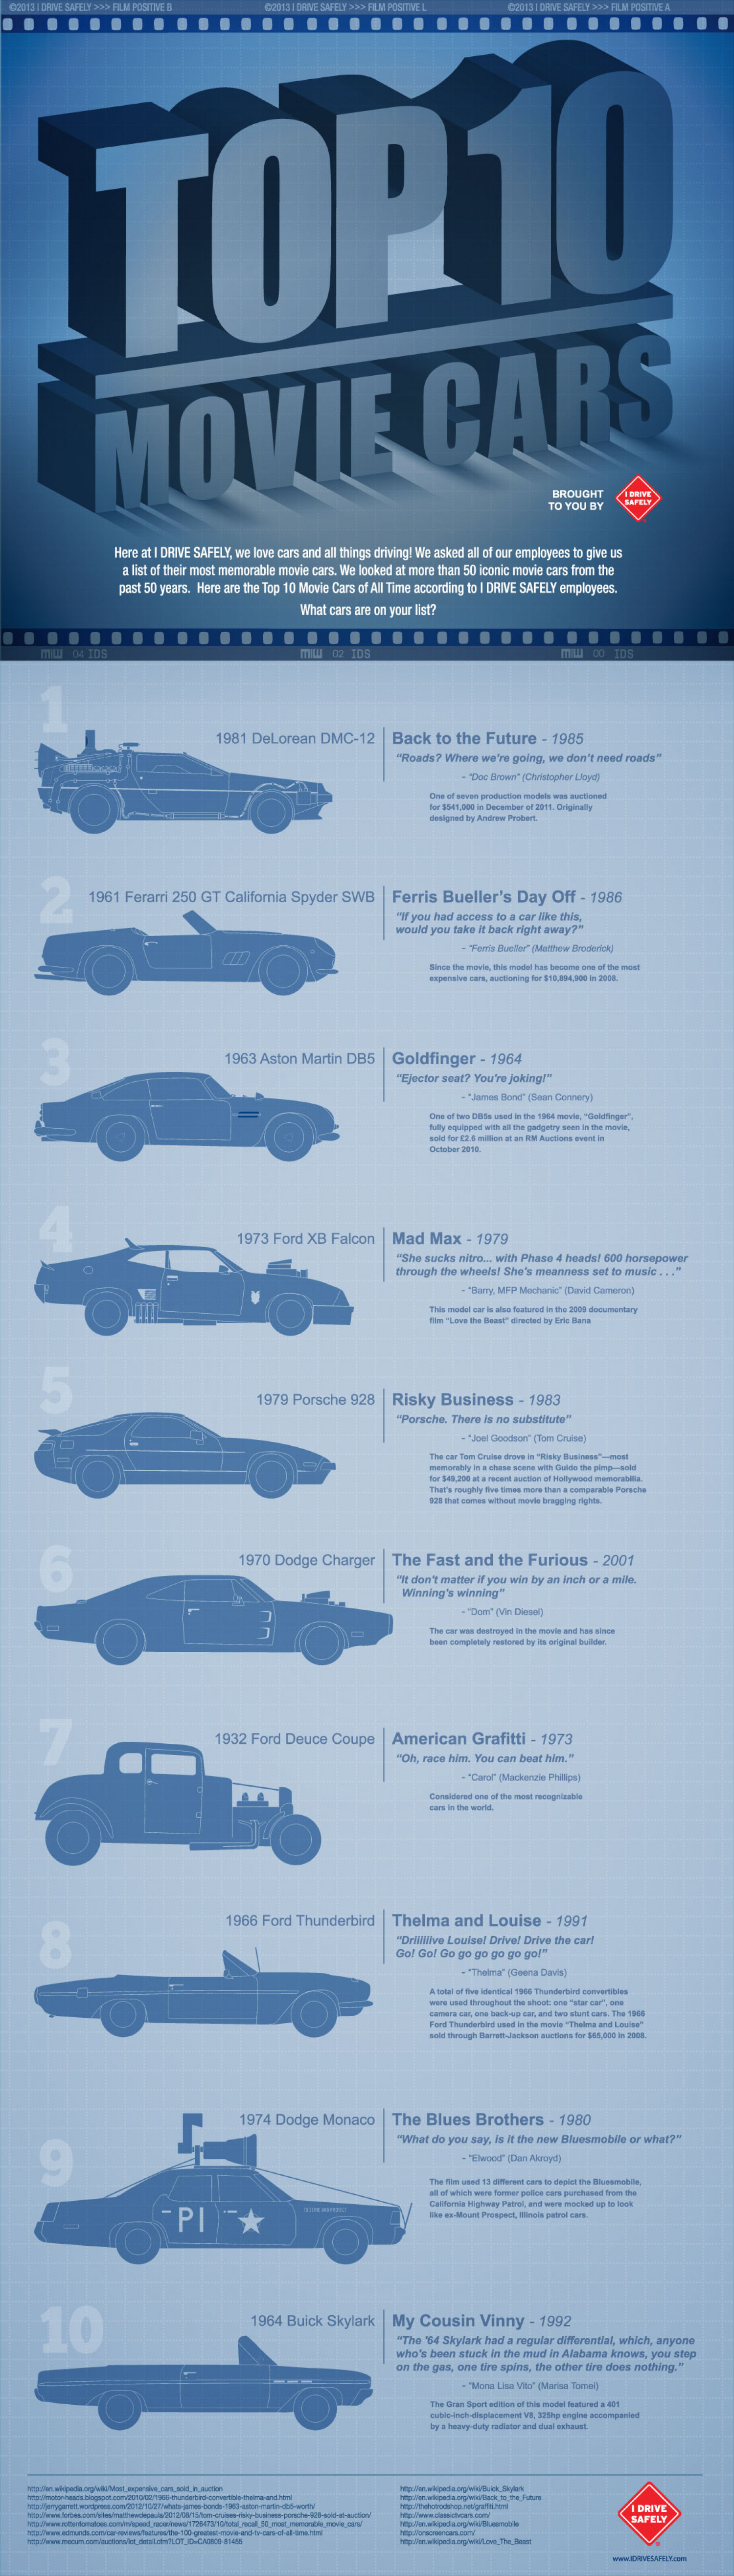 The Top 10 Movie Cars of All-Time Infographic